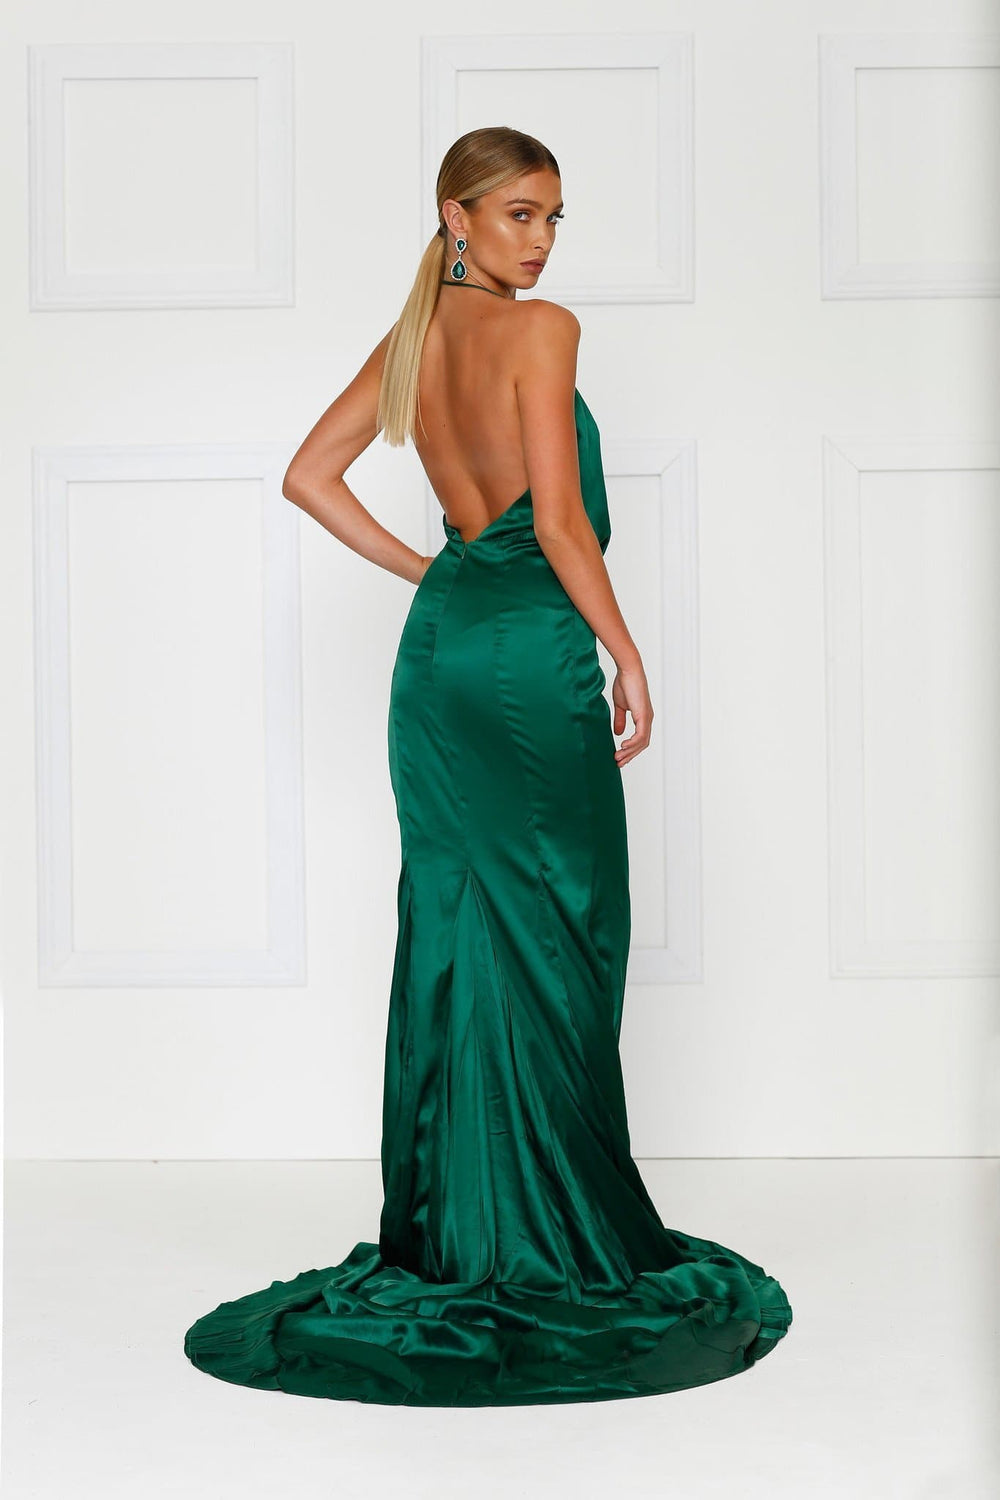 Guinevere - Emerald Satin Gown with Plunging Neckline & Front Slit